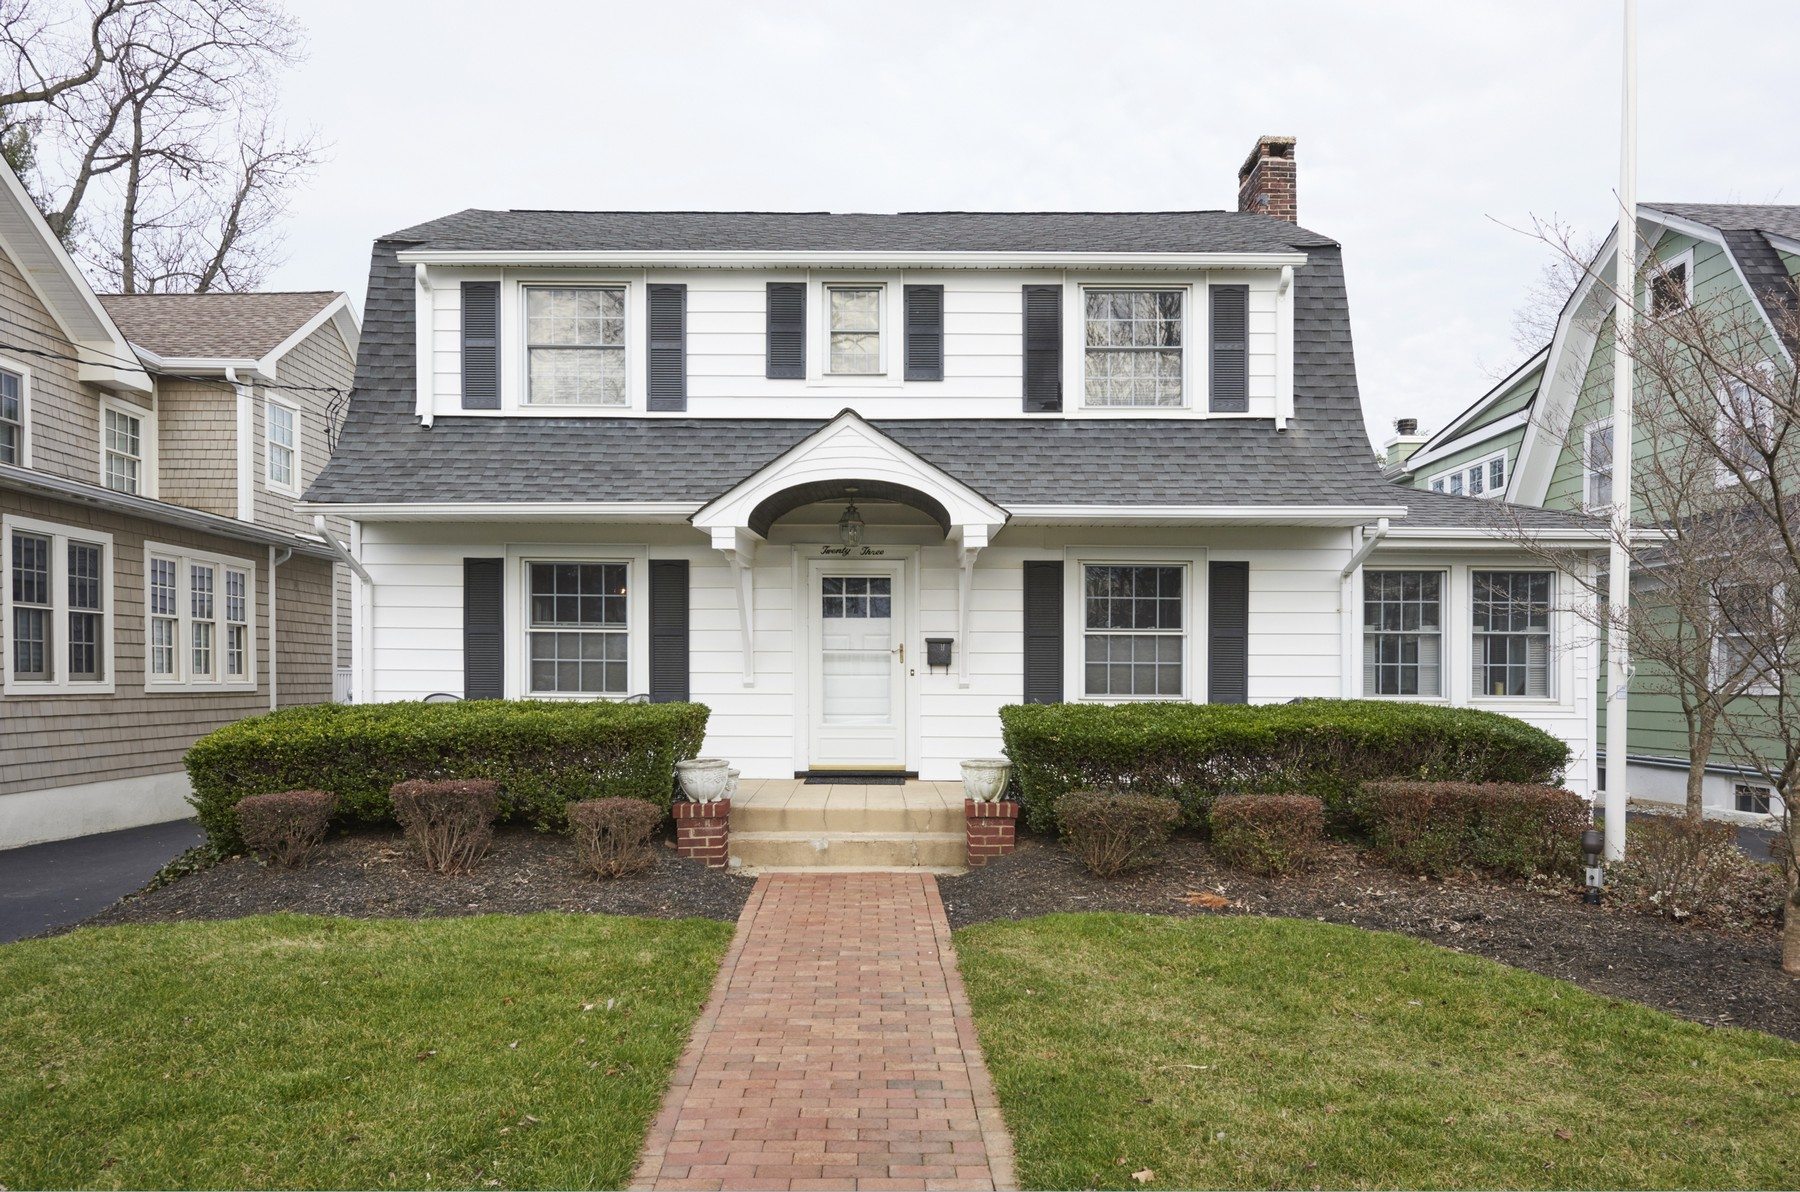 Single Family Home for Sale at Style and Function 23 Buena Place Red Bank, New Jersey 07701 United States